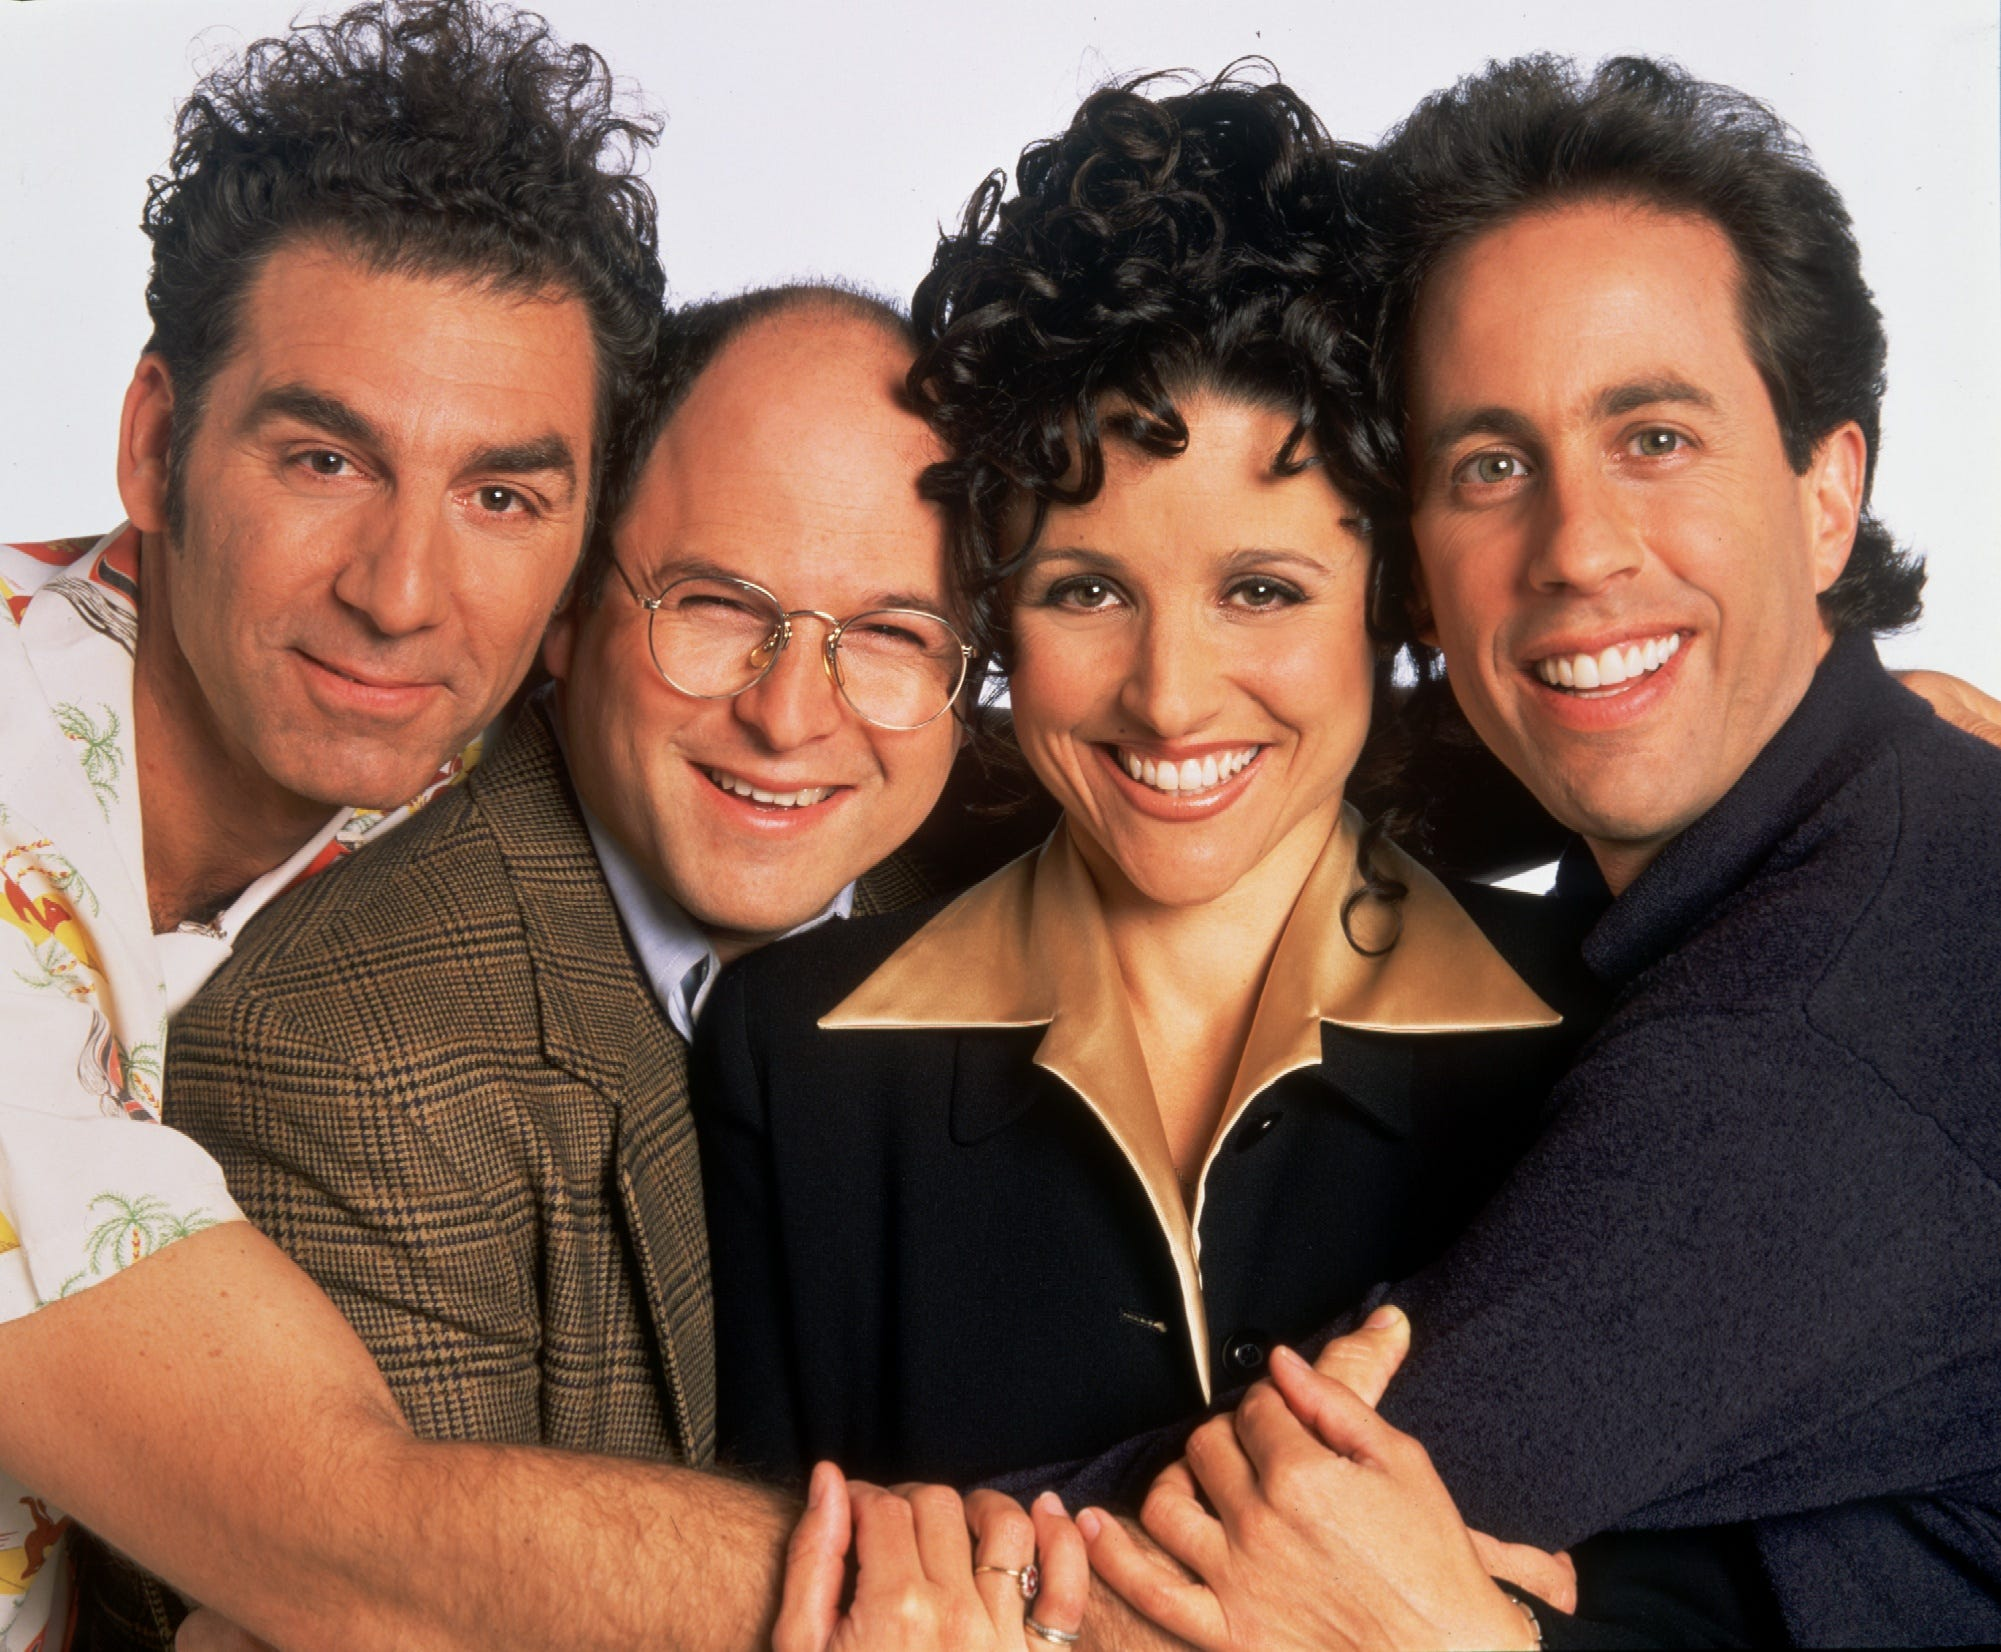 Seinfeld | 25 Highest Rated TV Shows of All-Time | Popcorn Banter